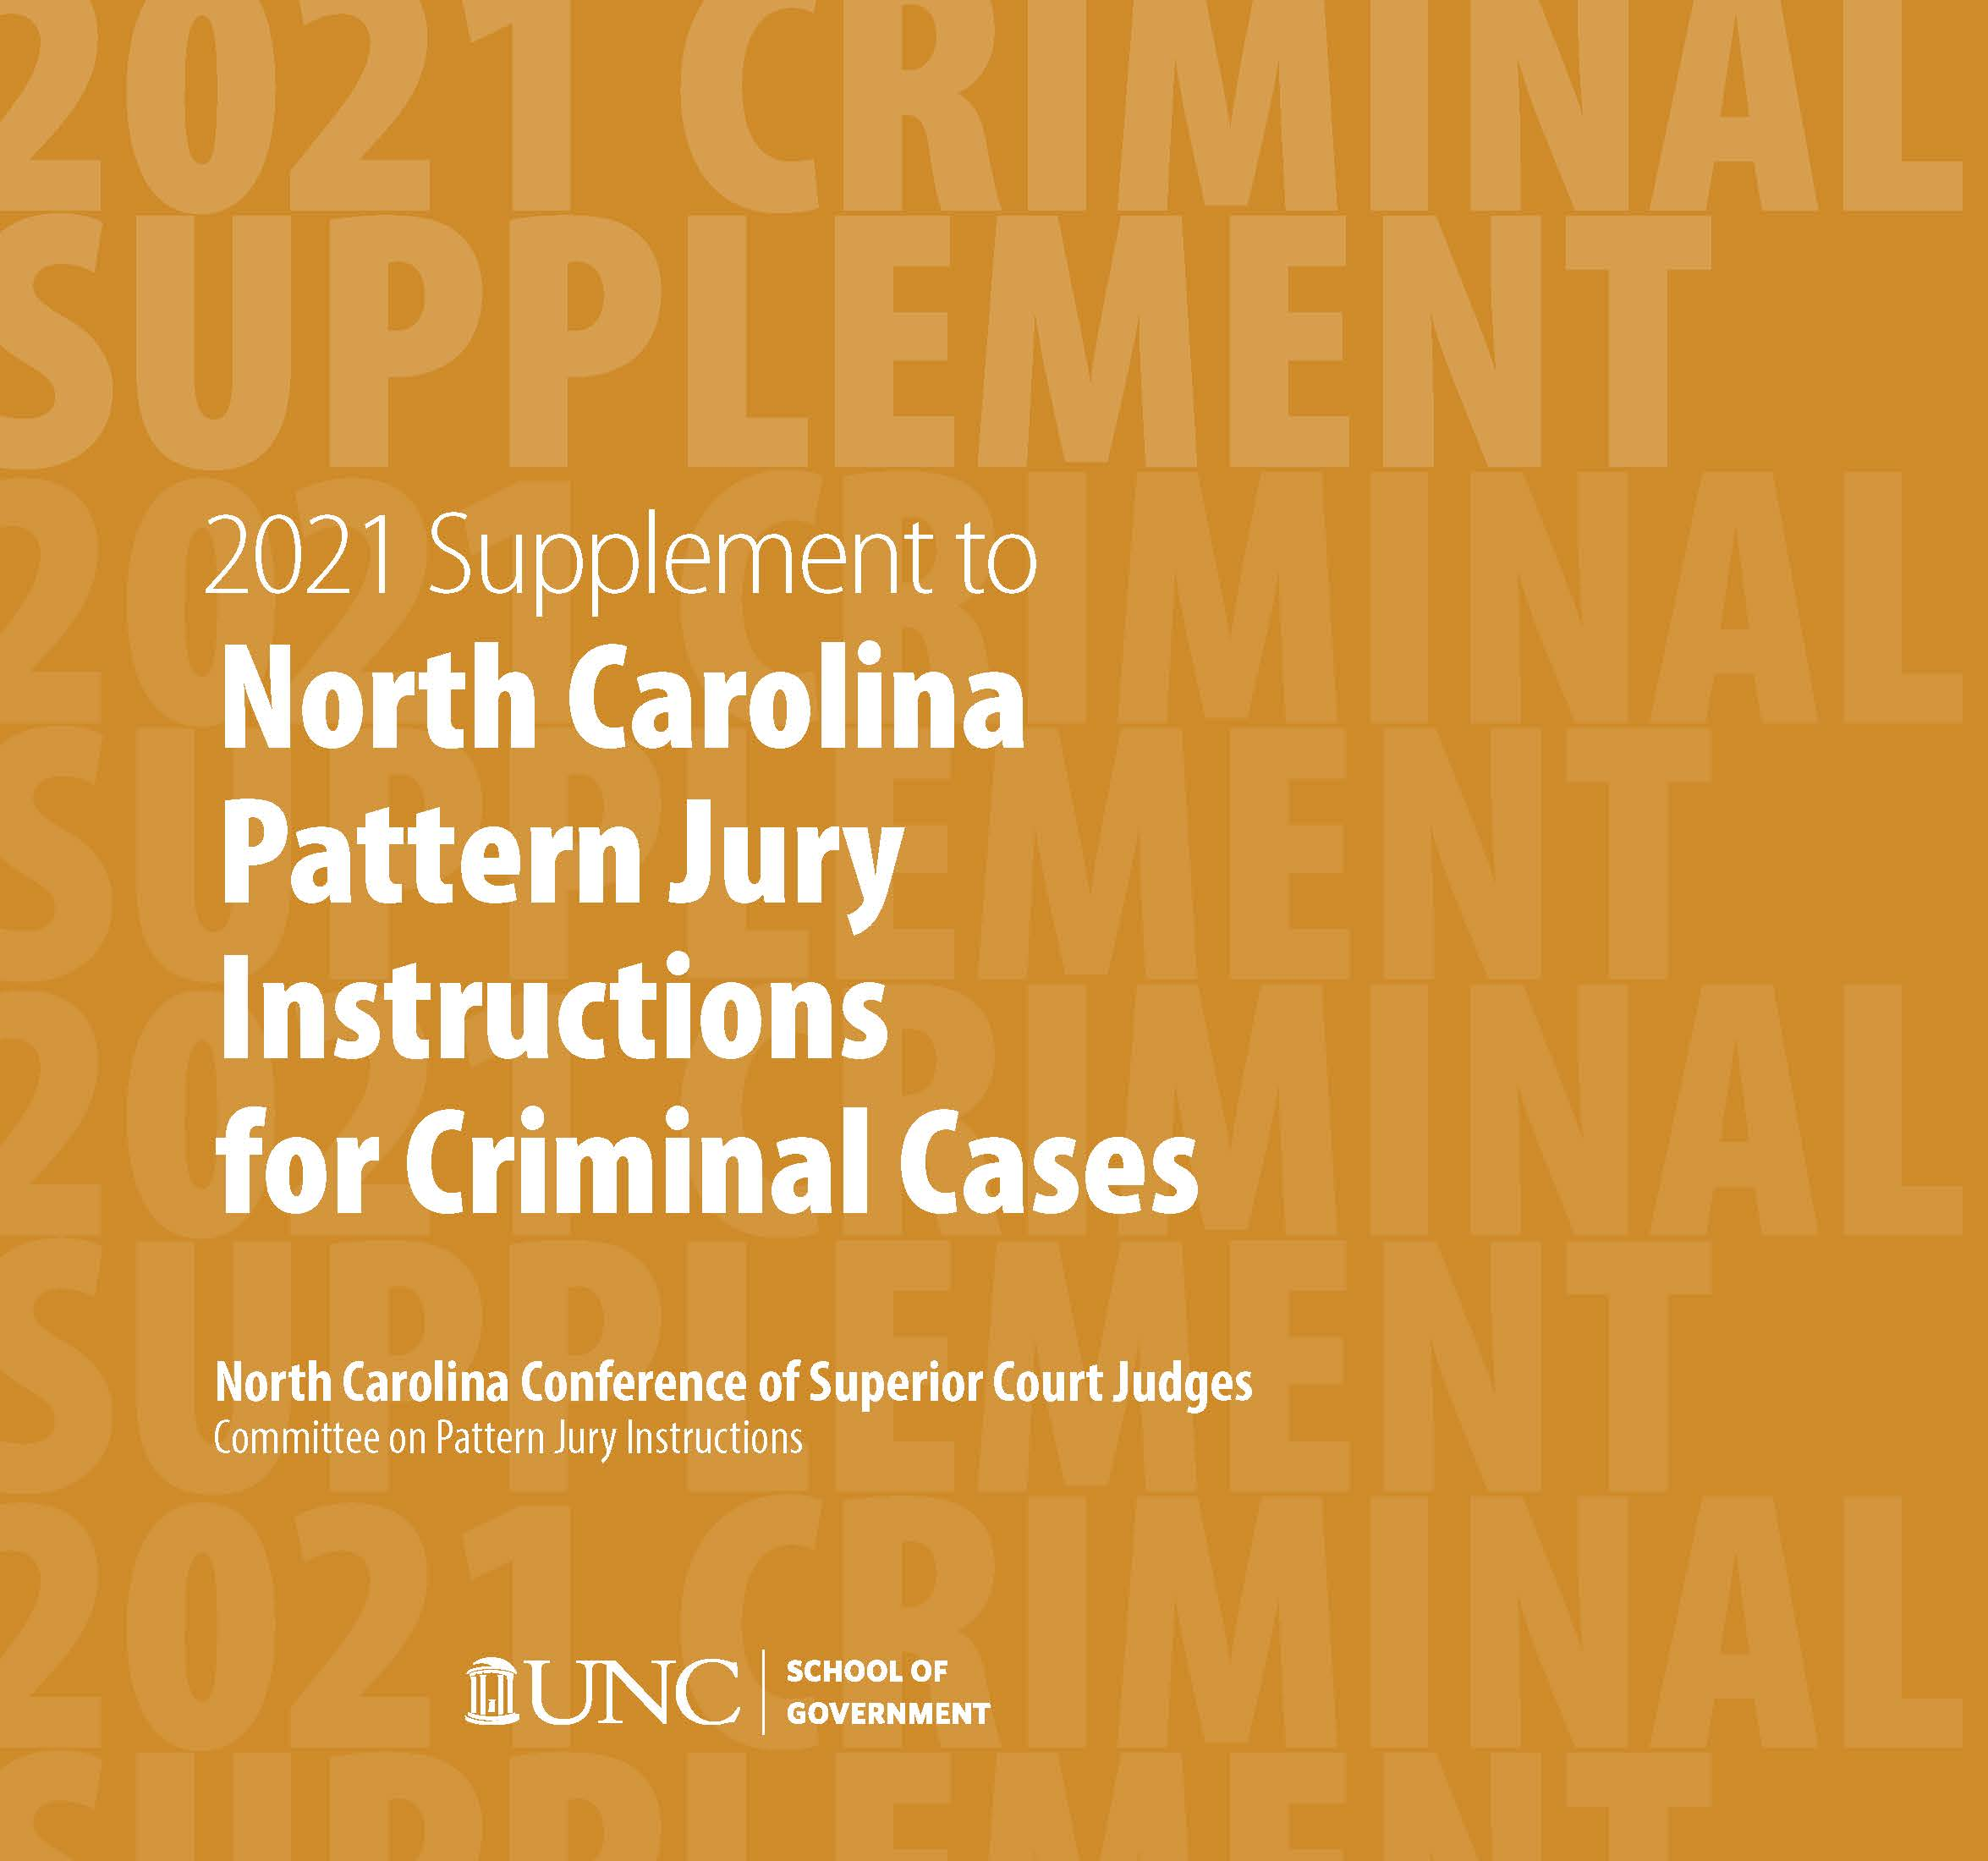 Cover image for June 2021 Supplement to North Carolina Pattern Jury Instructions for Criminal Cases